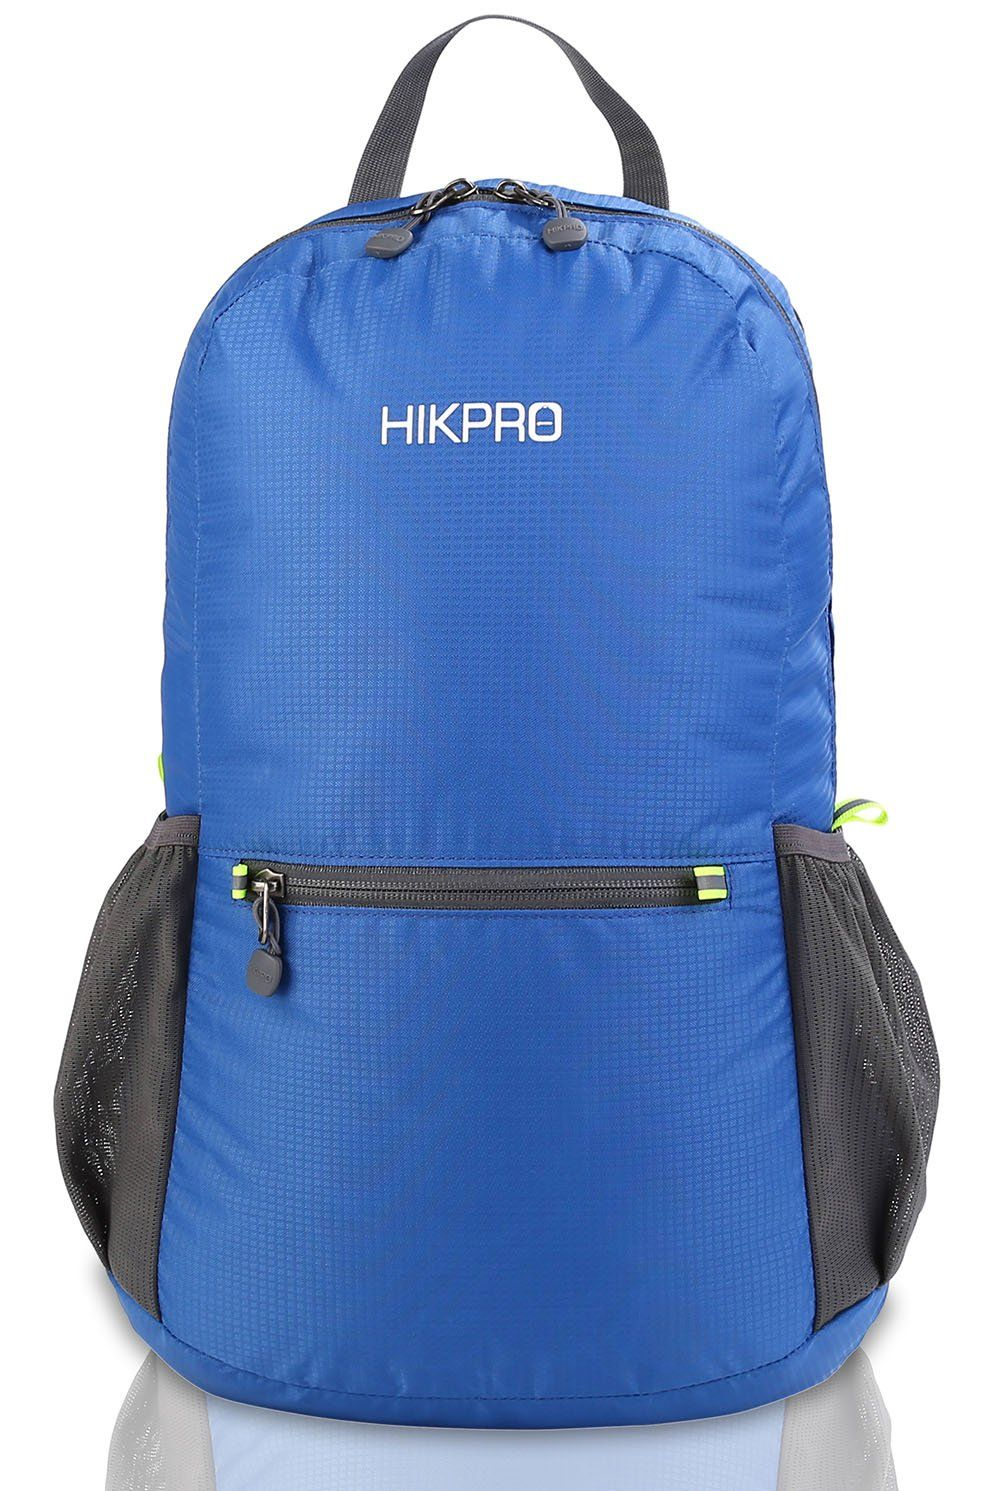 39646182ec9c Hikpro 20L The Most Durable Lightweight Packable Backpack Water Resistant Travel  Hiking Daypack For Men